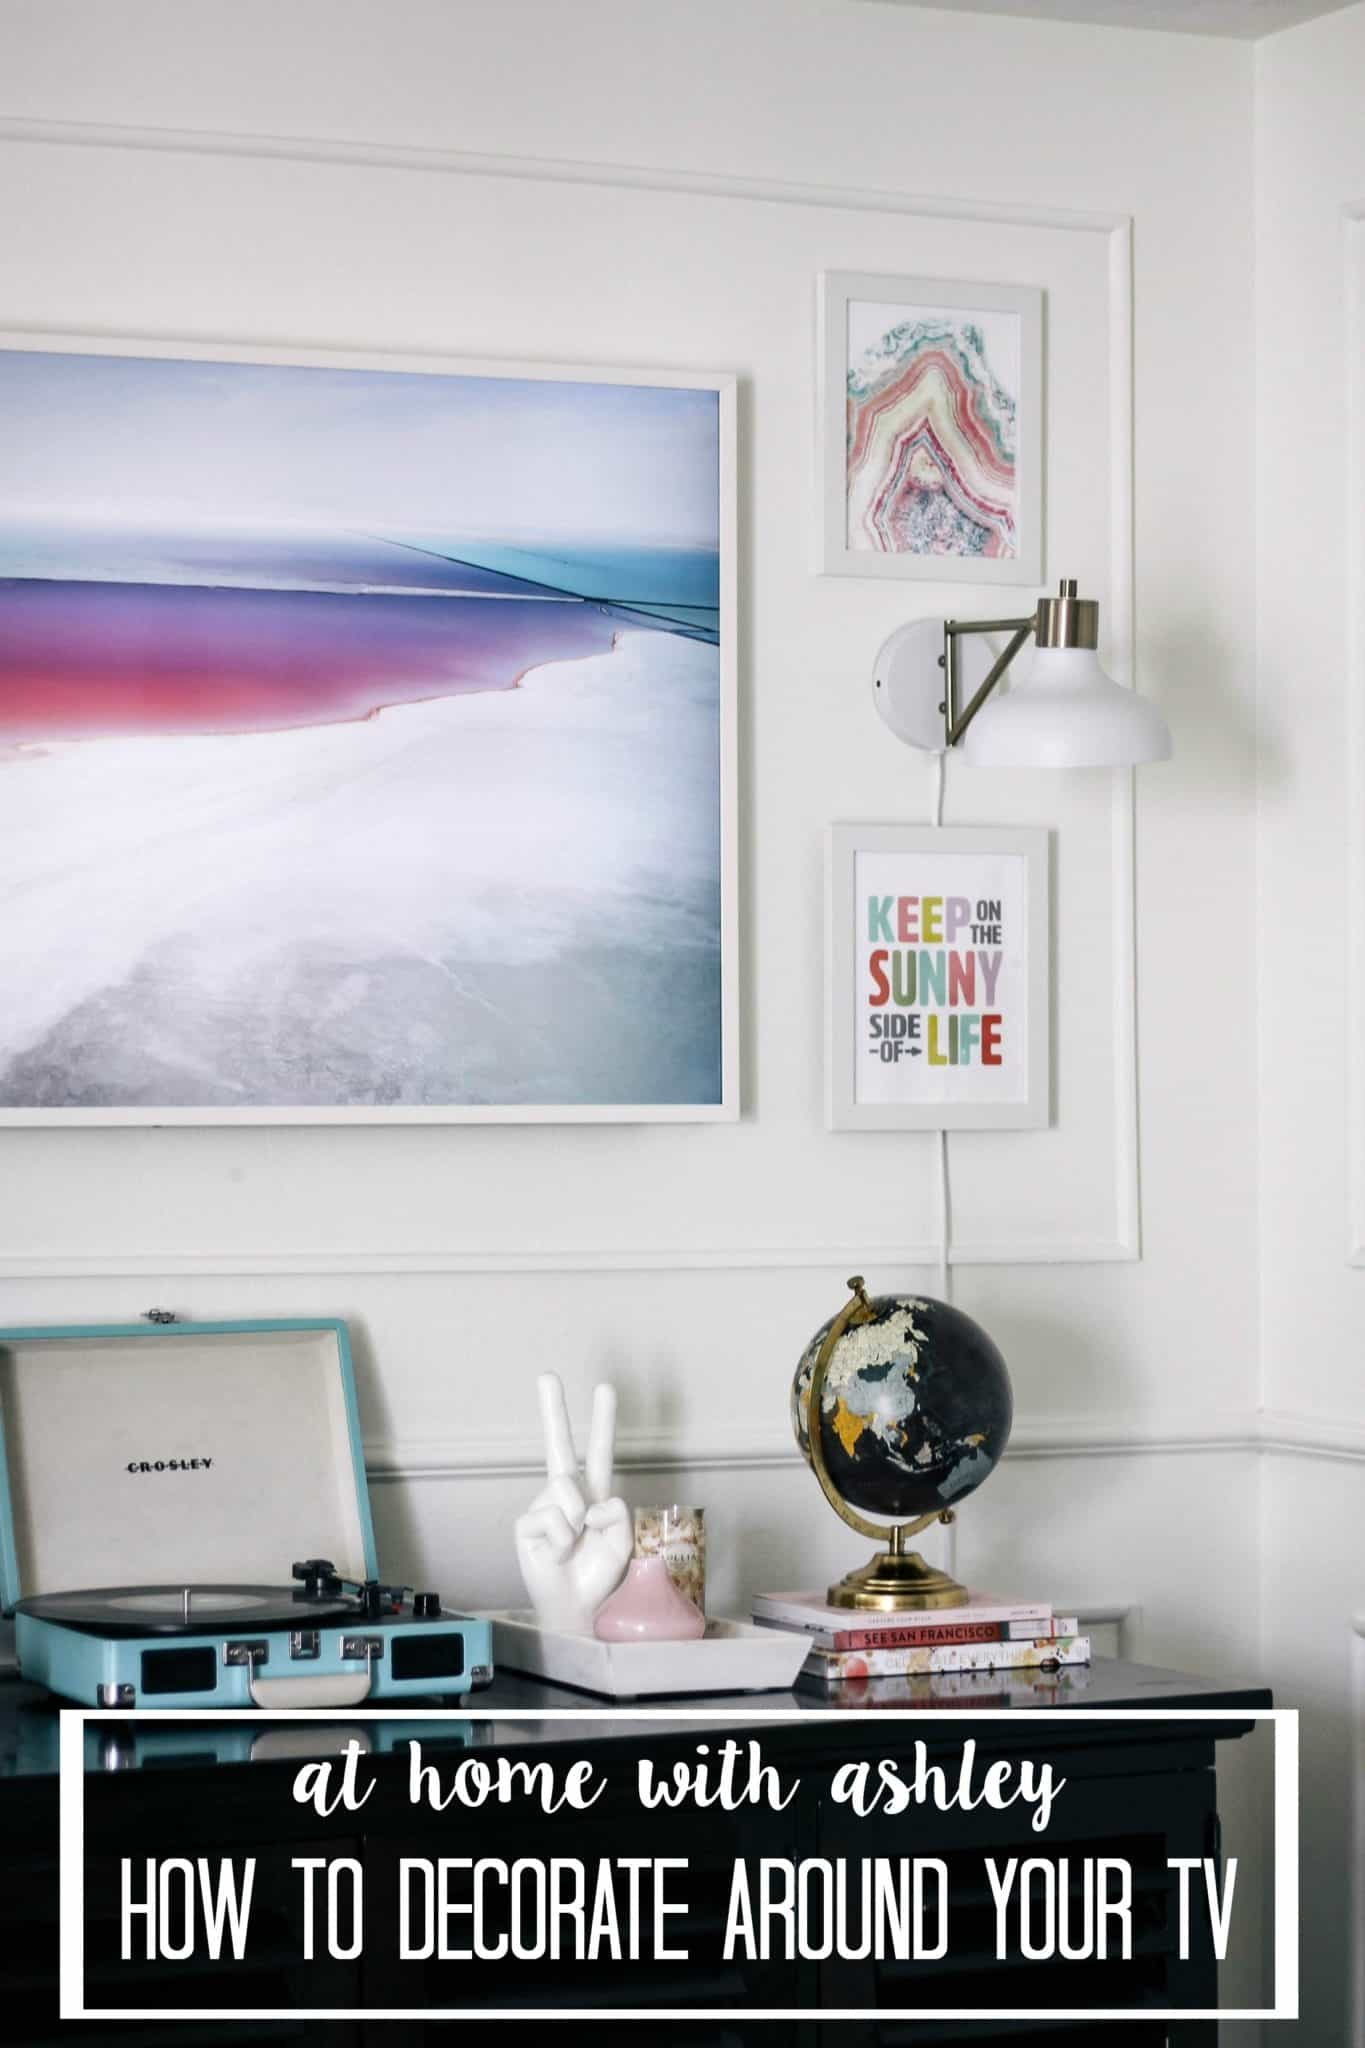 how to design or decorate around the TV to help it blend in better with your decor